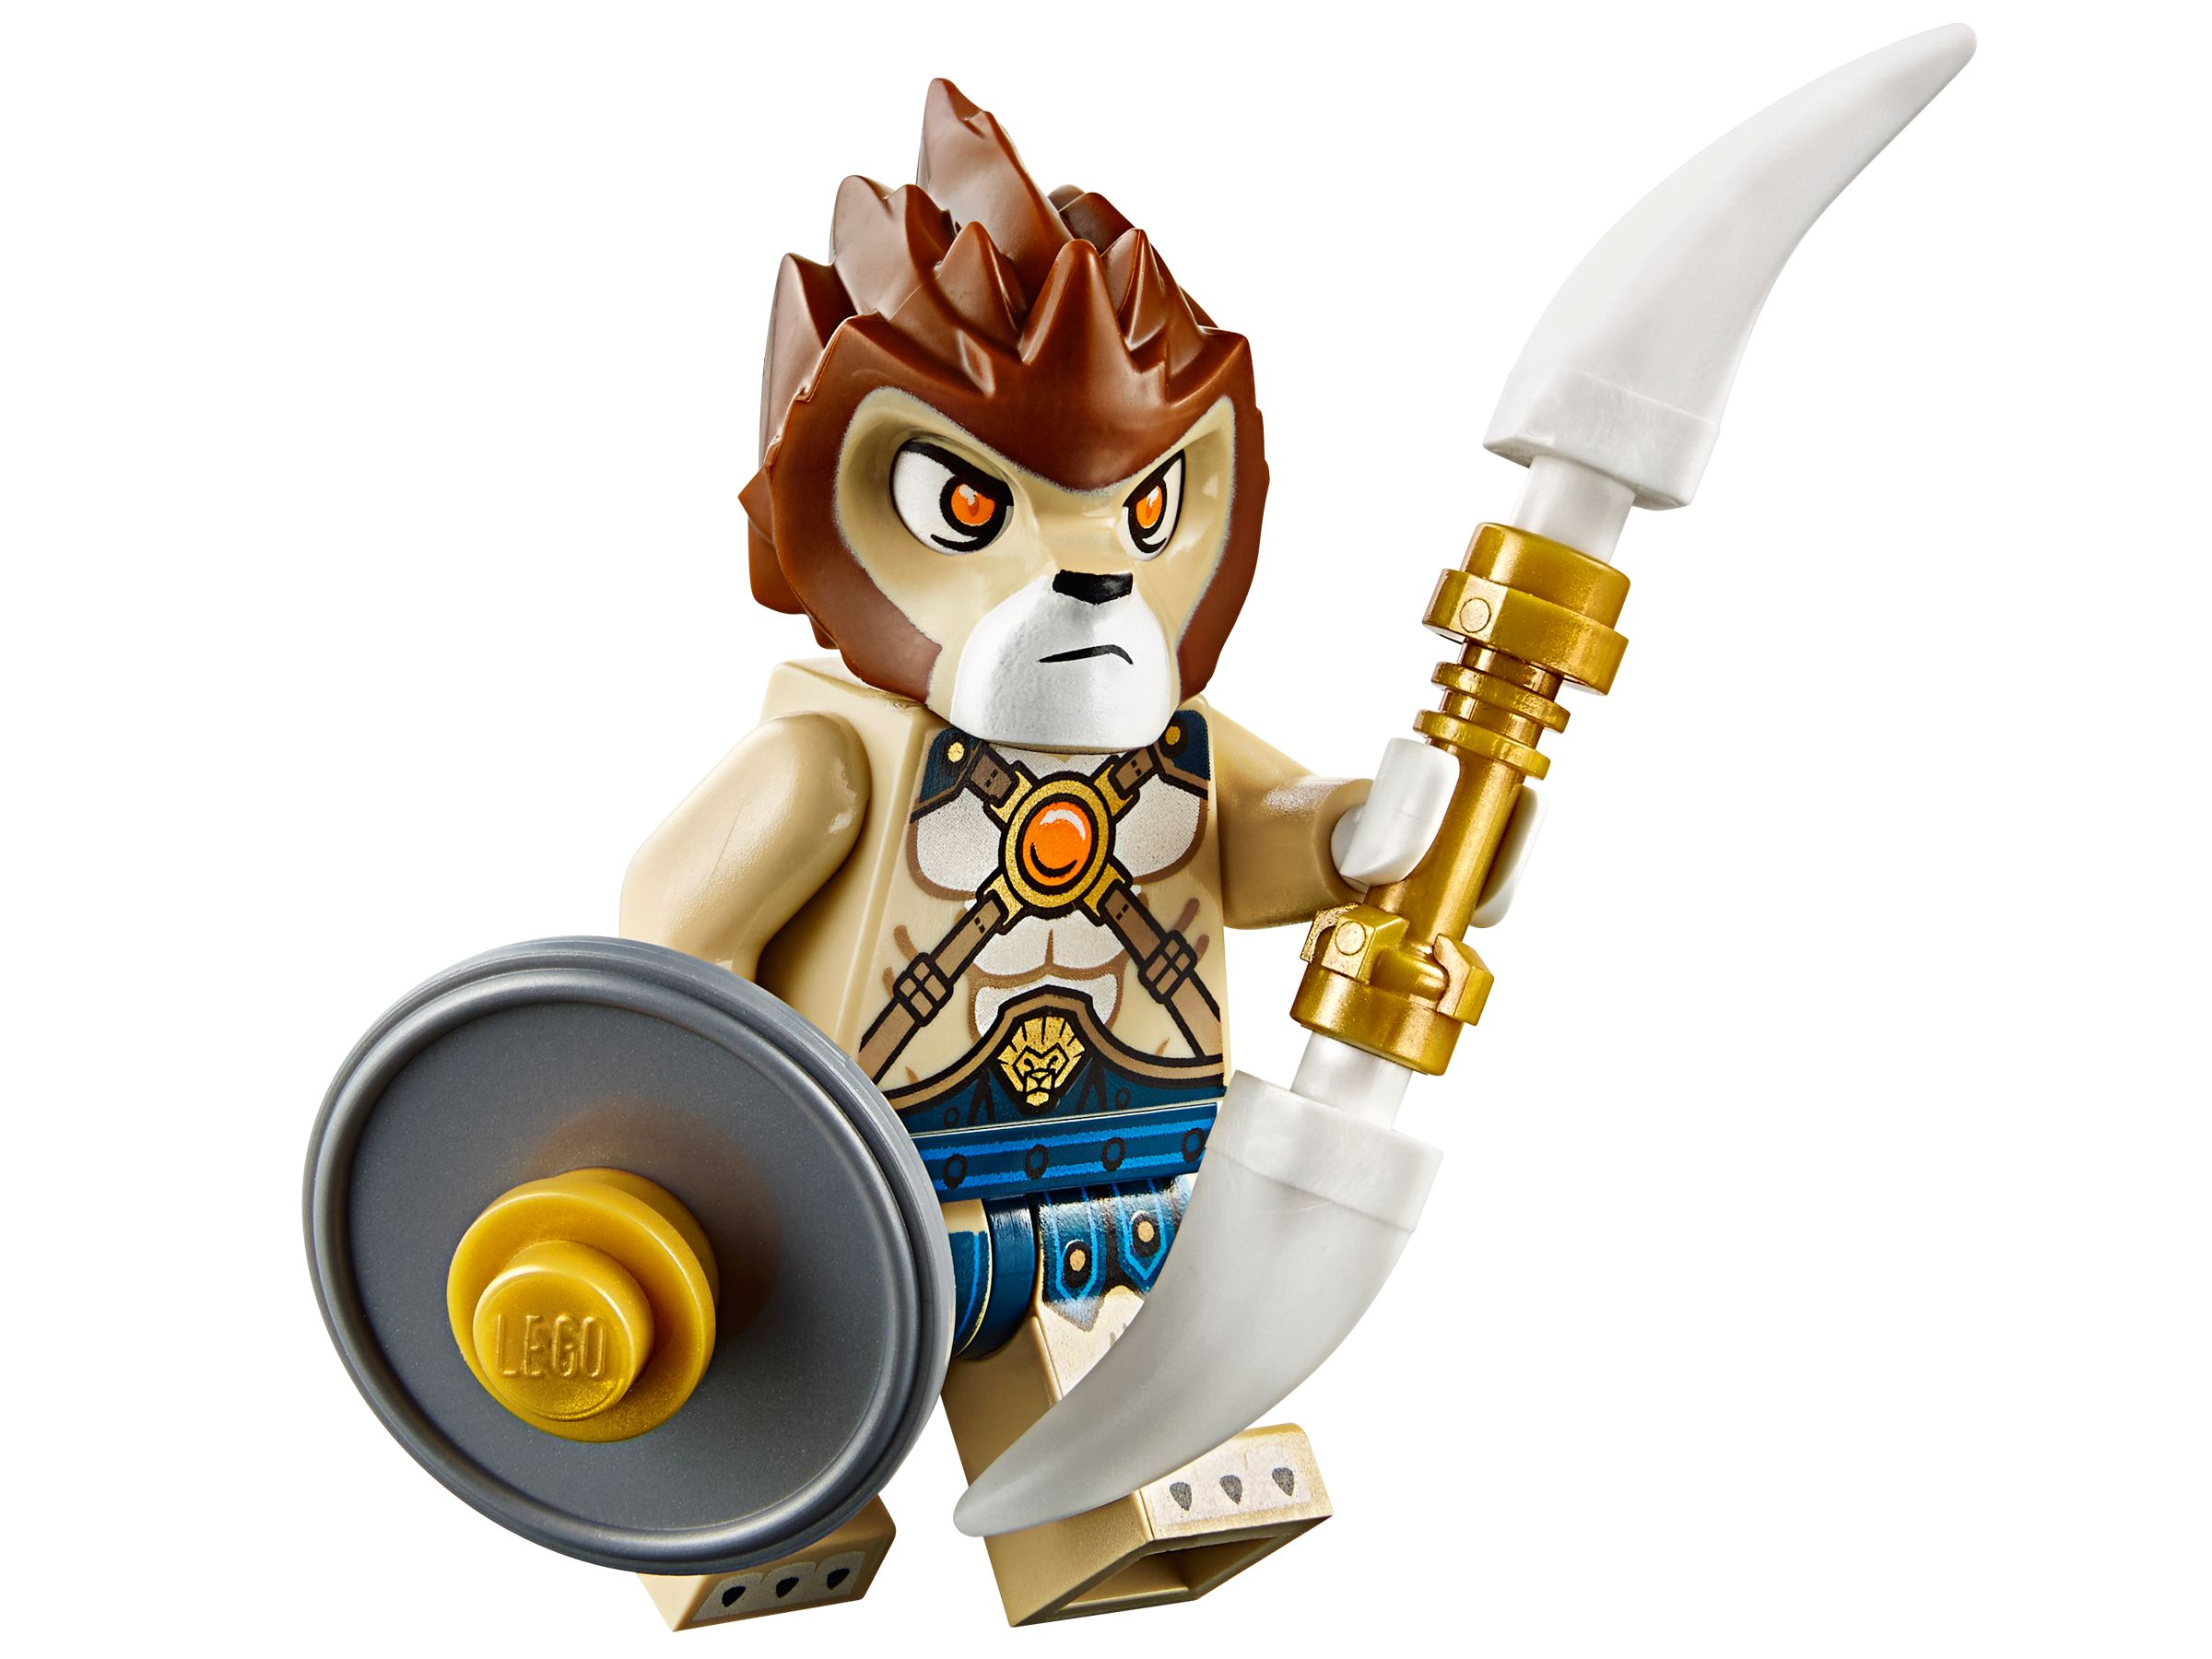 LEGO Legends Of Chima 70229 Löwenstamm-Set LEGO_70229_alt3.jpg